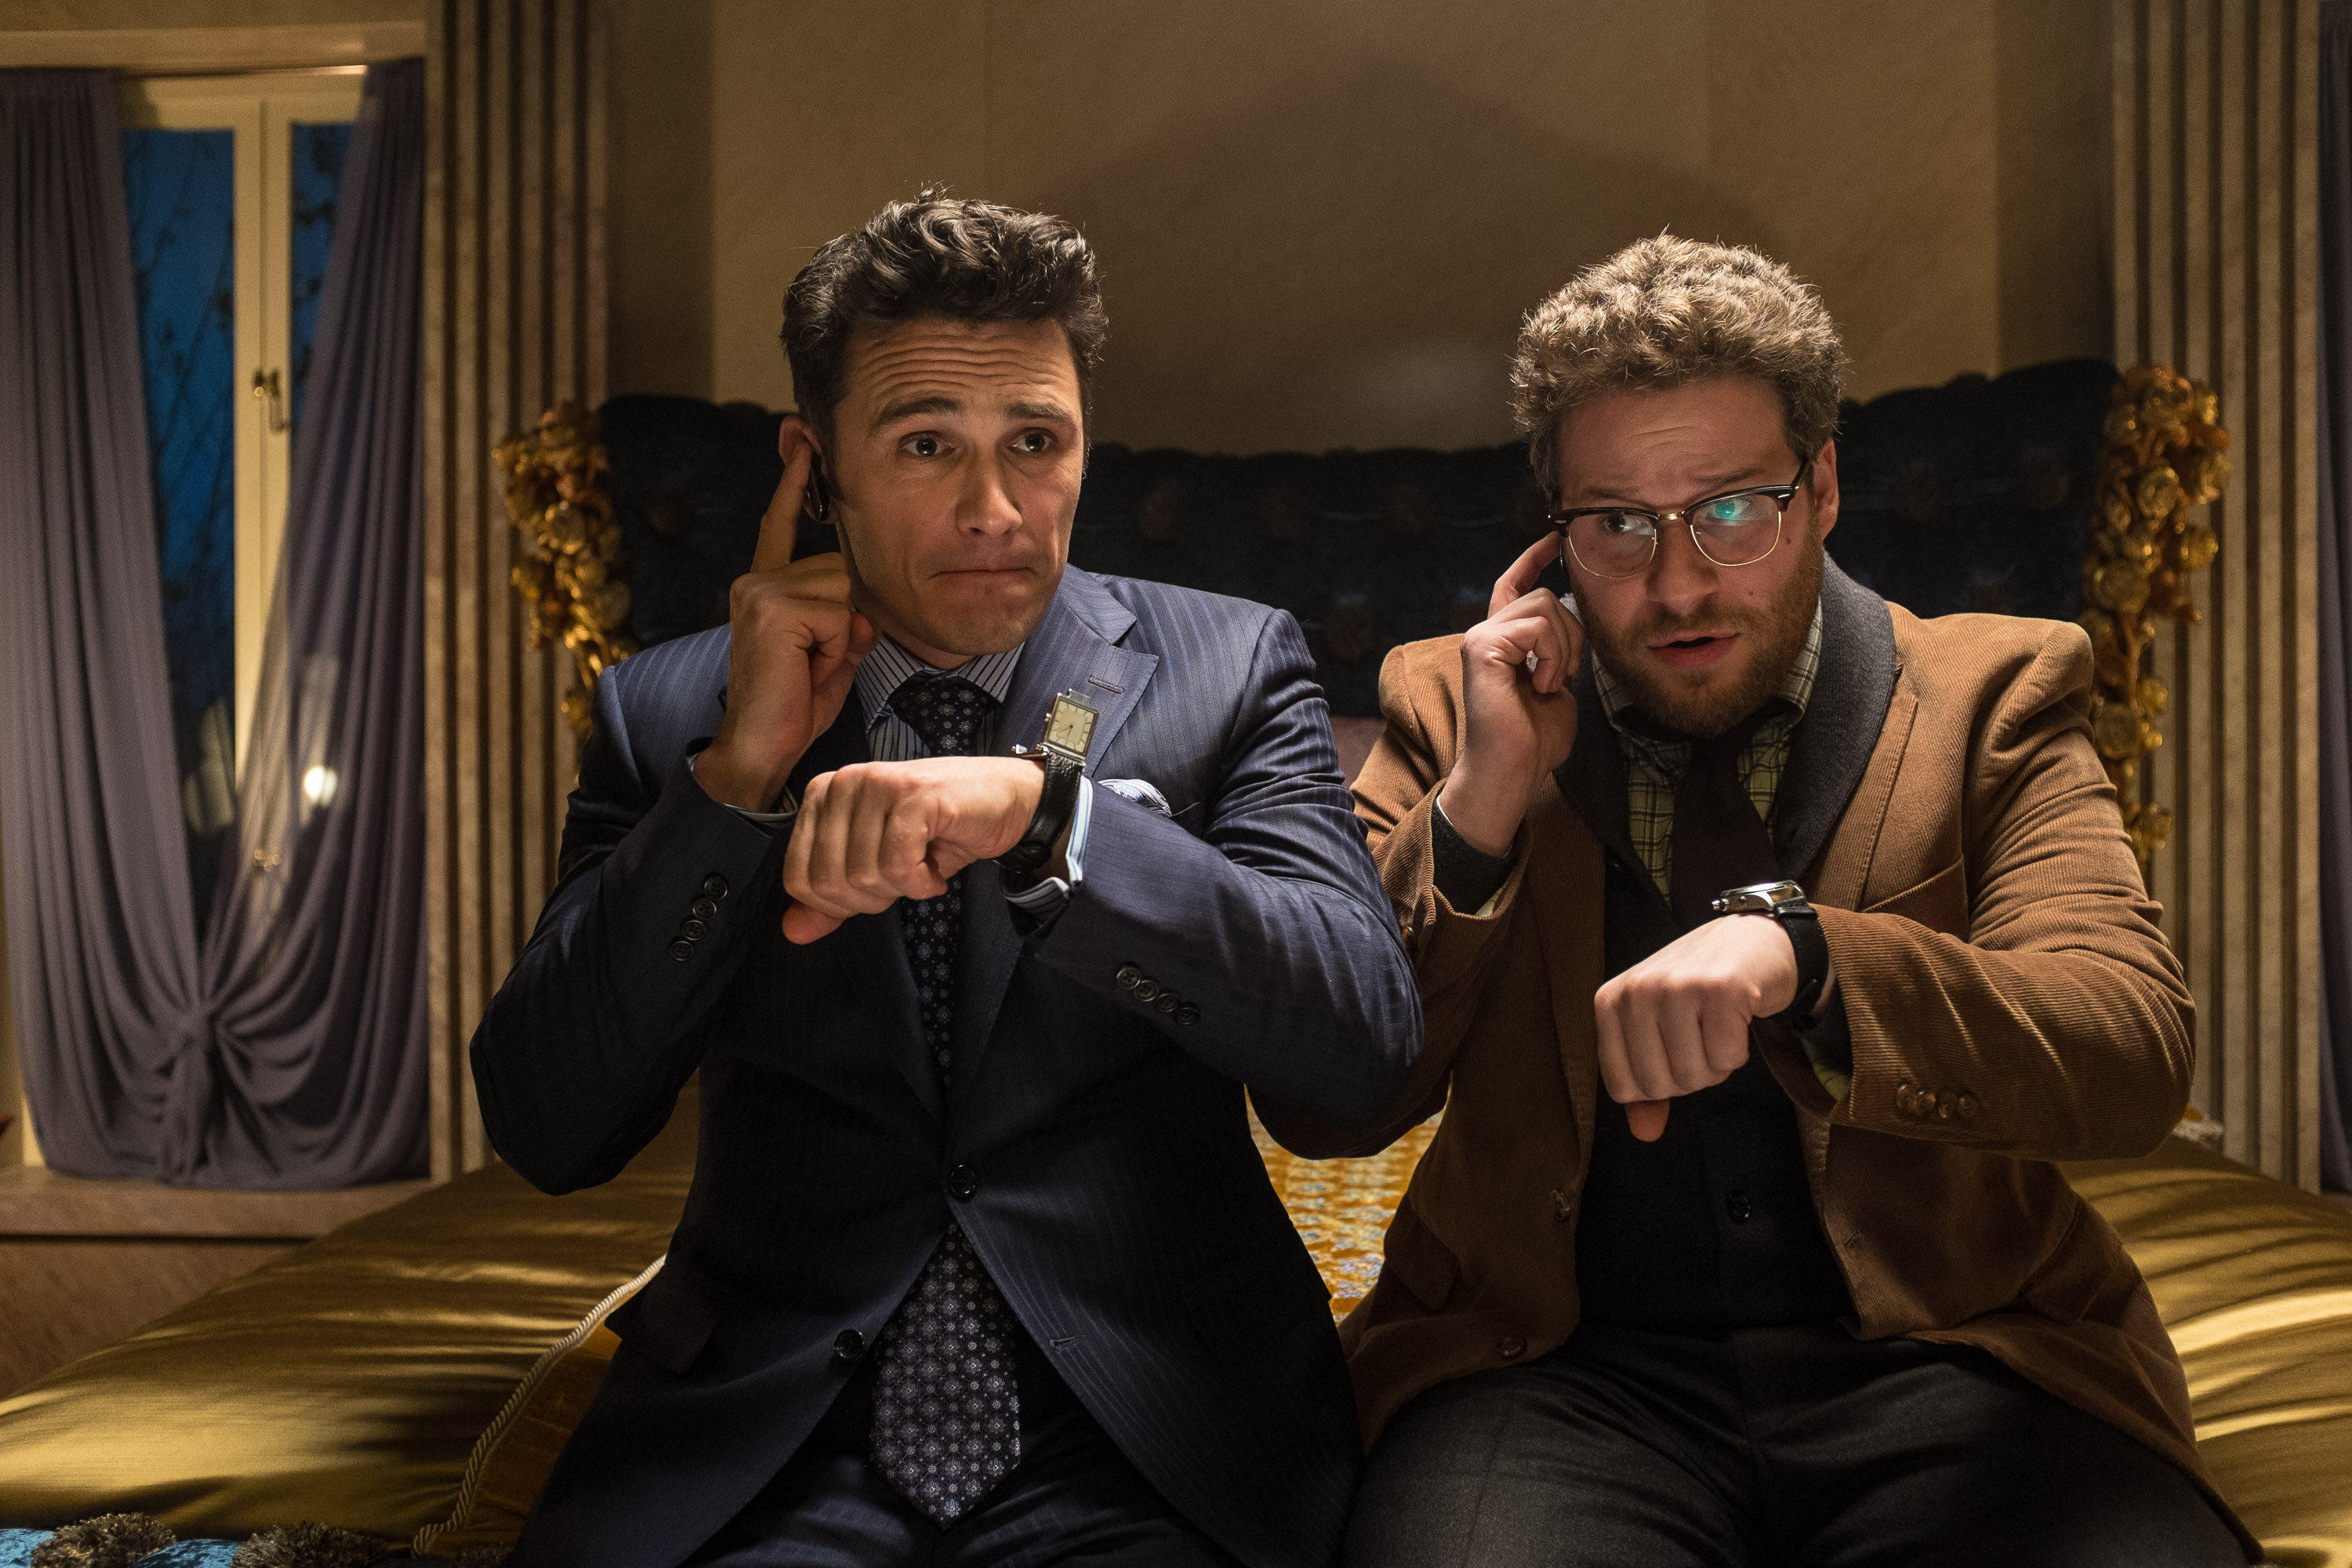 James Franco and Seth Rogen sit next to each other while touching their respective earpieces